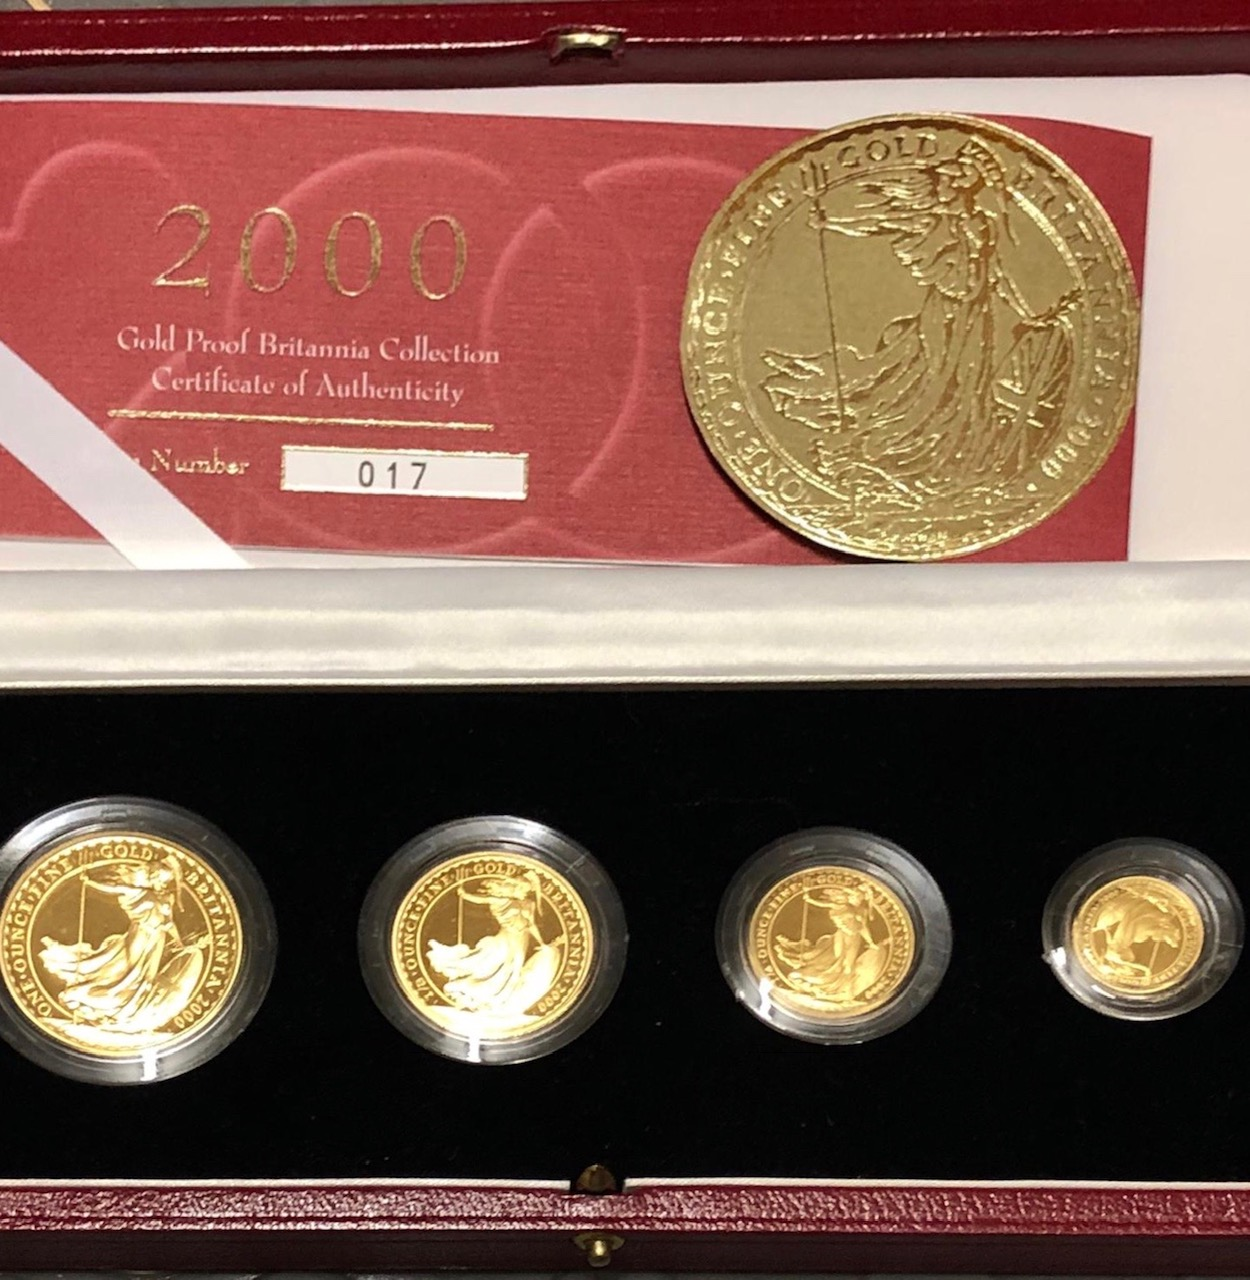 2000 Four Coin Gold Proof Britannia Set